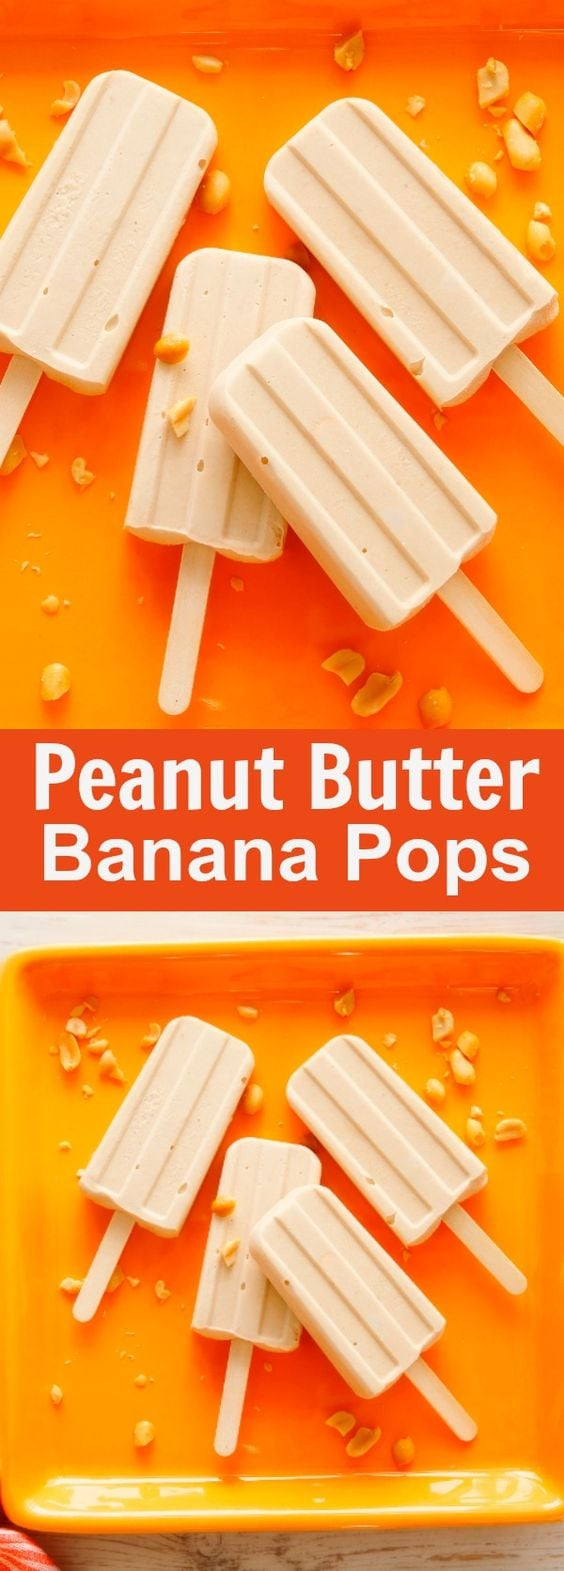 Peanut Butter Banana Pops - the creamiest homemade popsciles ever. Loaded with peanut butter and banana, they're perfect for summer | rasamalaysia.com